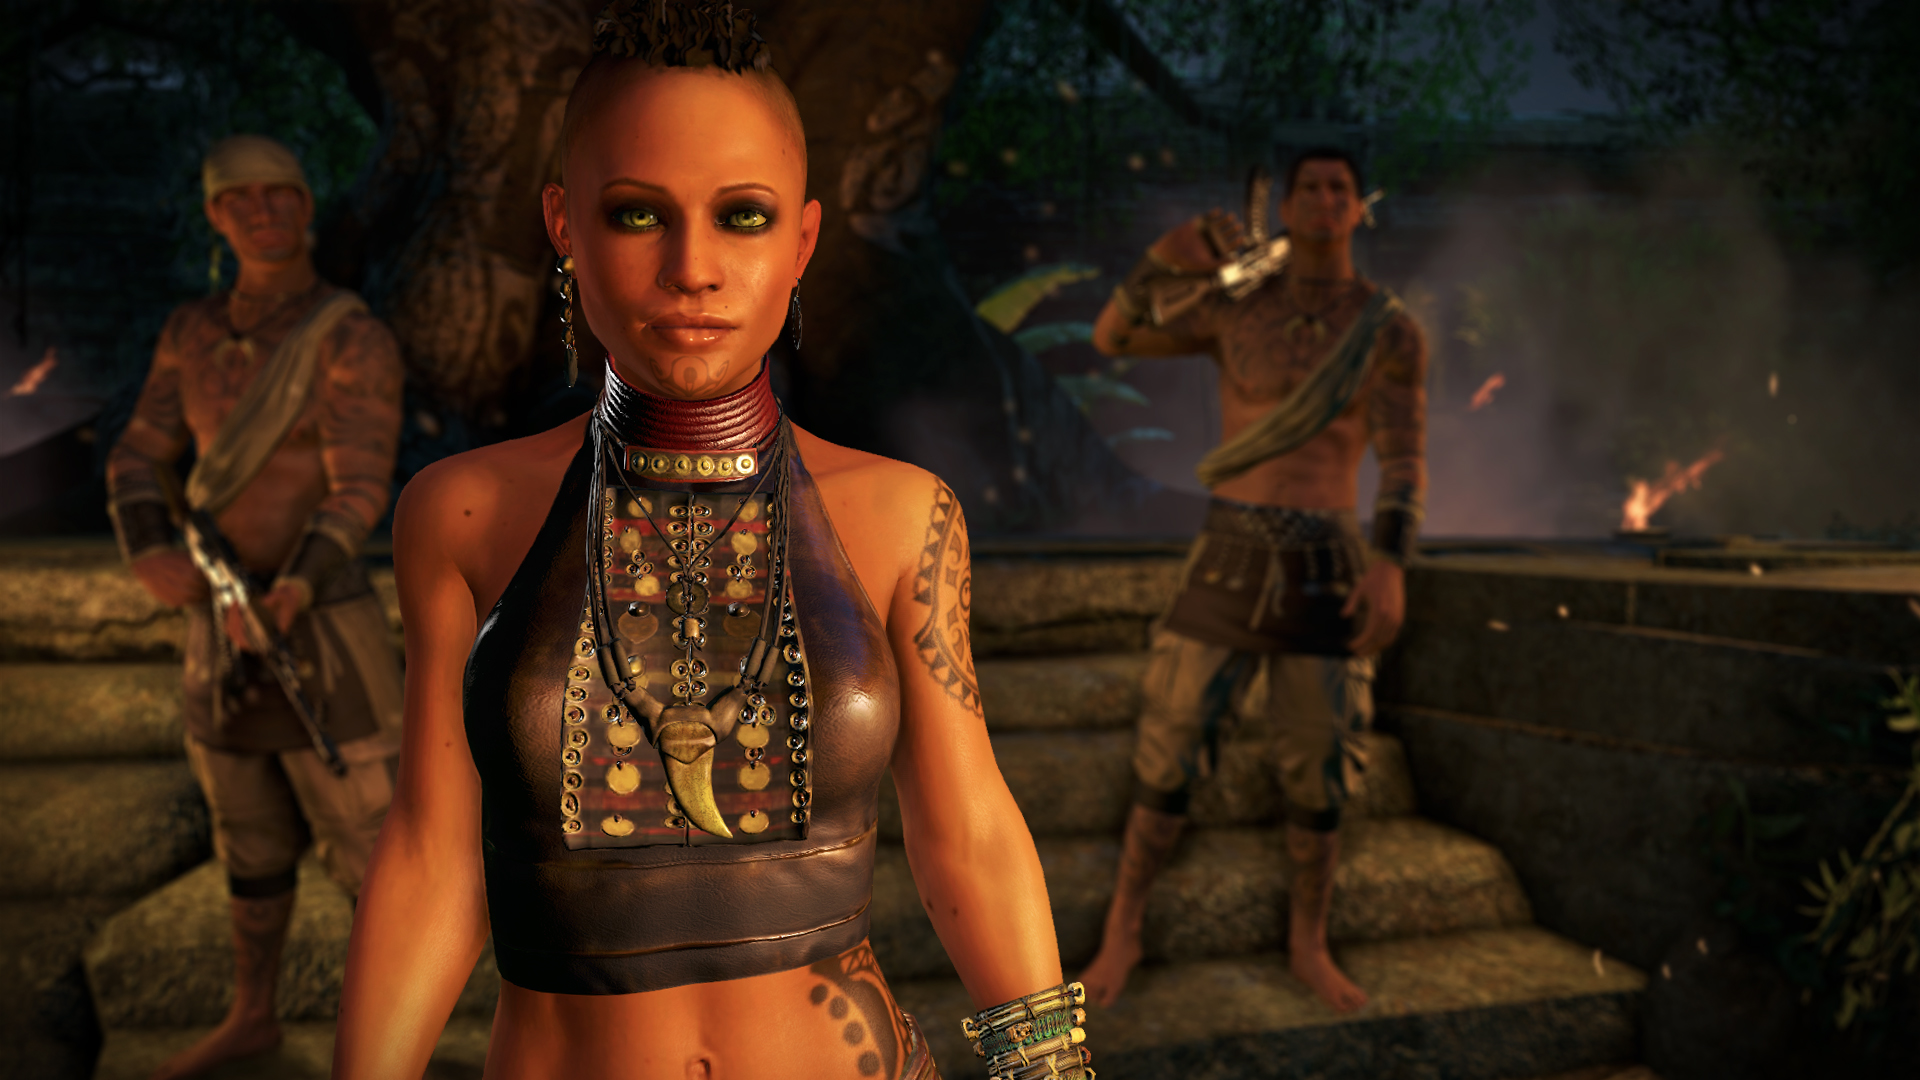 Far cry 3 patch nude exposed clip